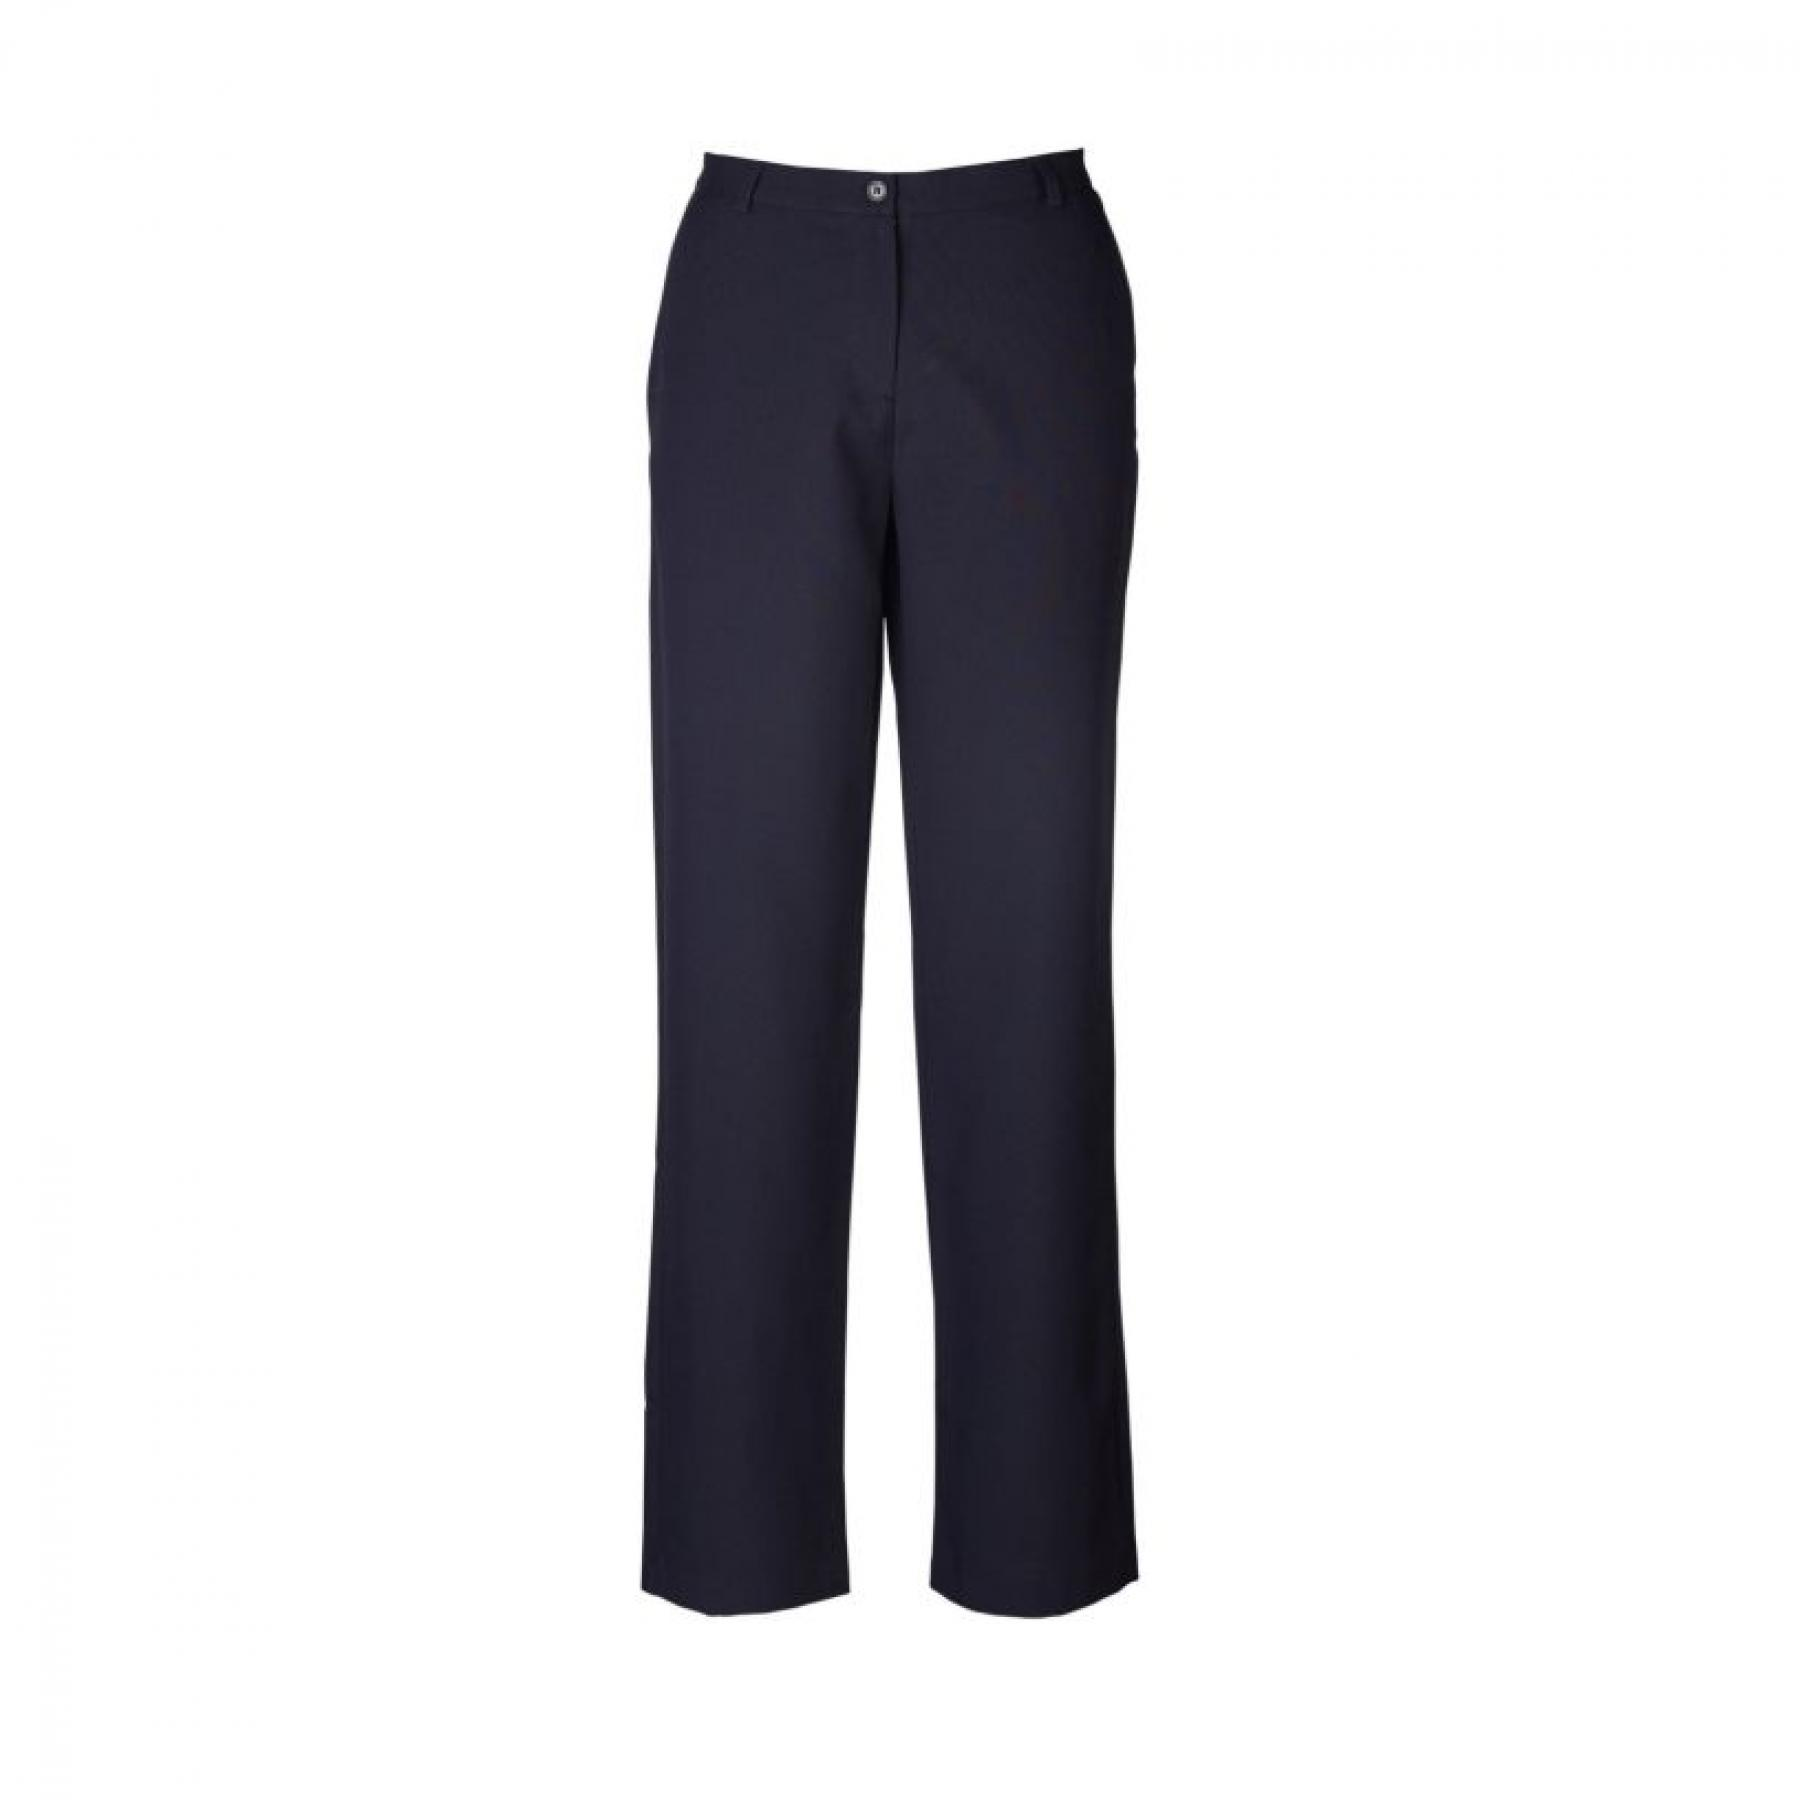 Kerry Straight Cut Slacks - Navy